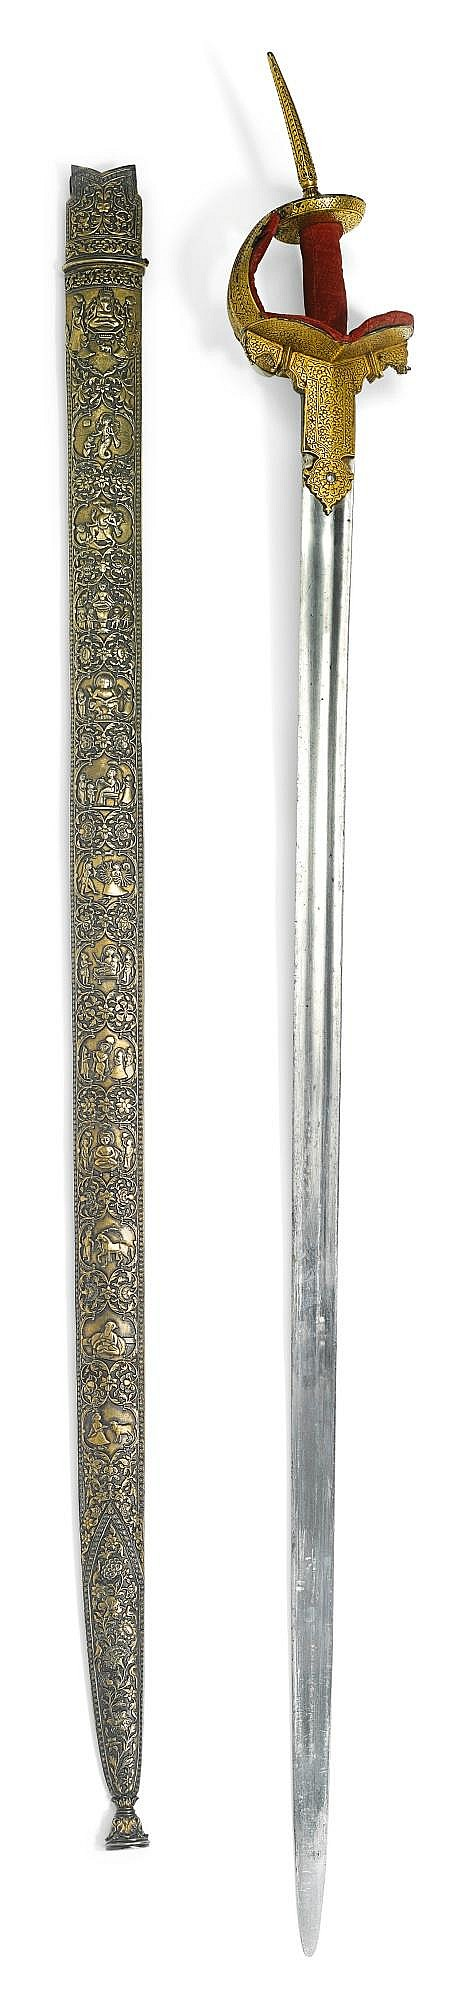 AN INDIAN SWORD (FIRANGI) WITH EUROPEAN STEEL BLADE, 17TH/18TH CENTURY, WITH A FINE SCABBARD SIGNED BY RAM DAKHS SANWAT, INDIA, ALWAR, RAJASTHAN, DATED 1856 |